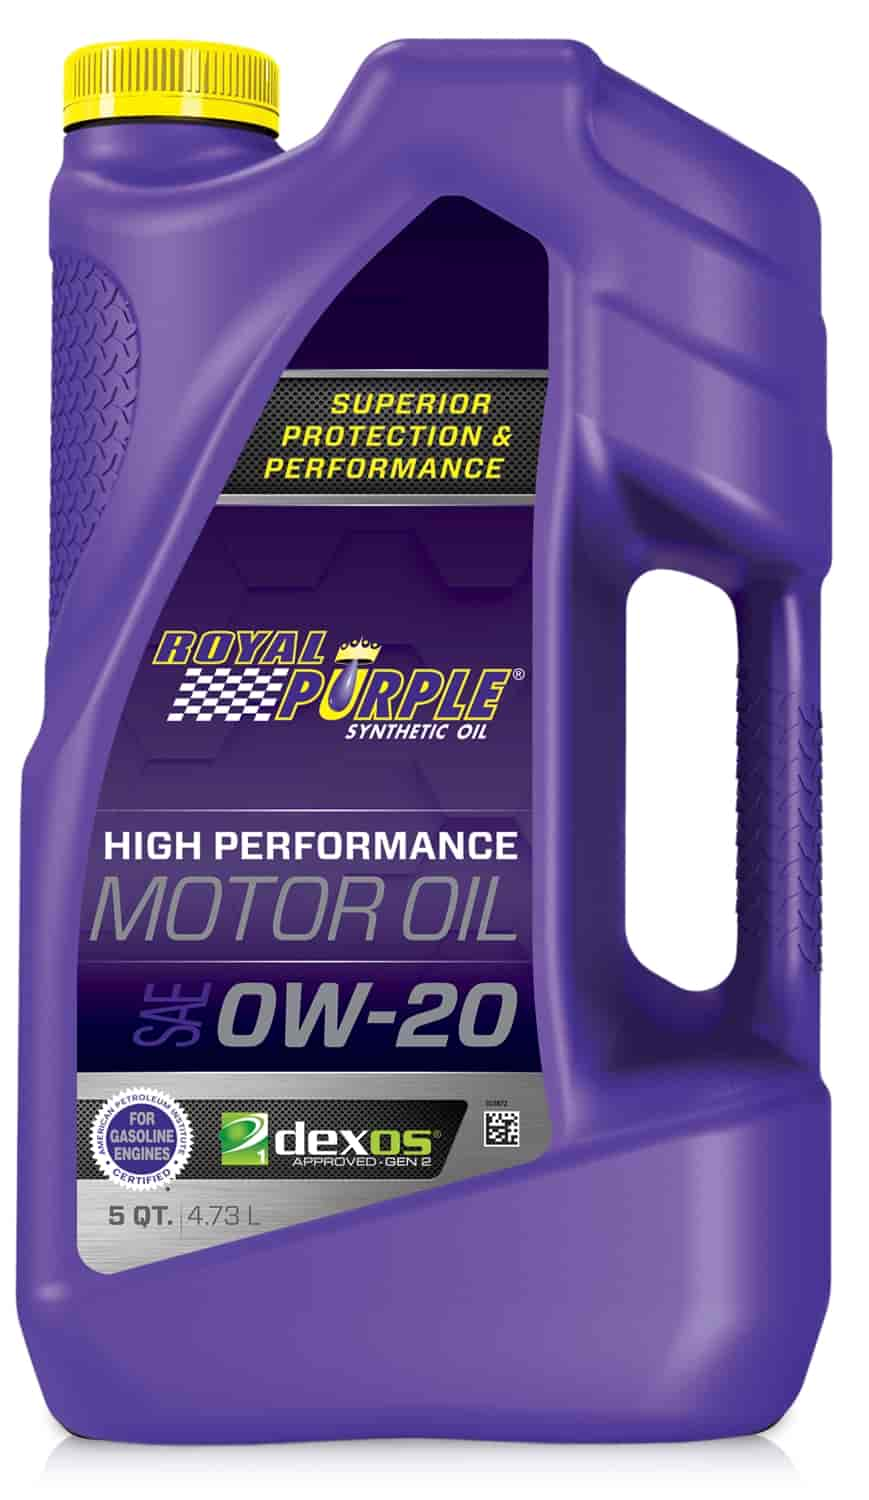 Royal Purple 51020 - Royal Purple Synthetic Oils and Lubricants